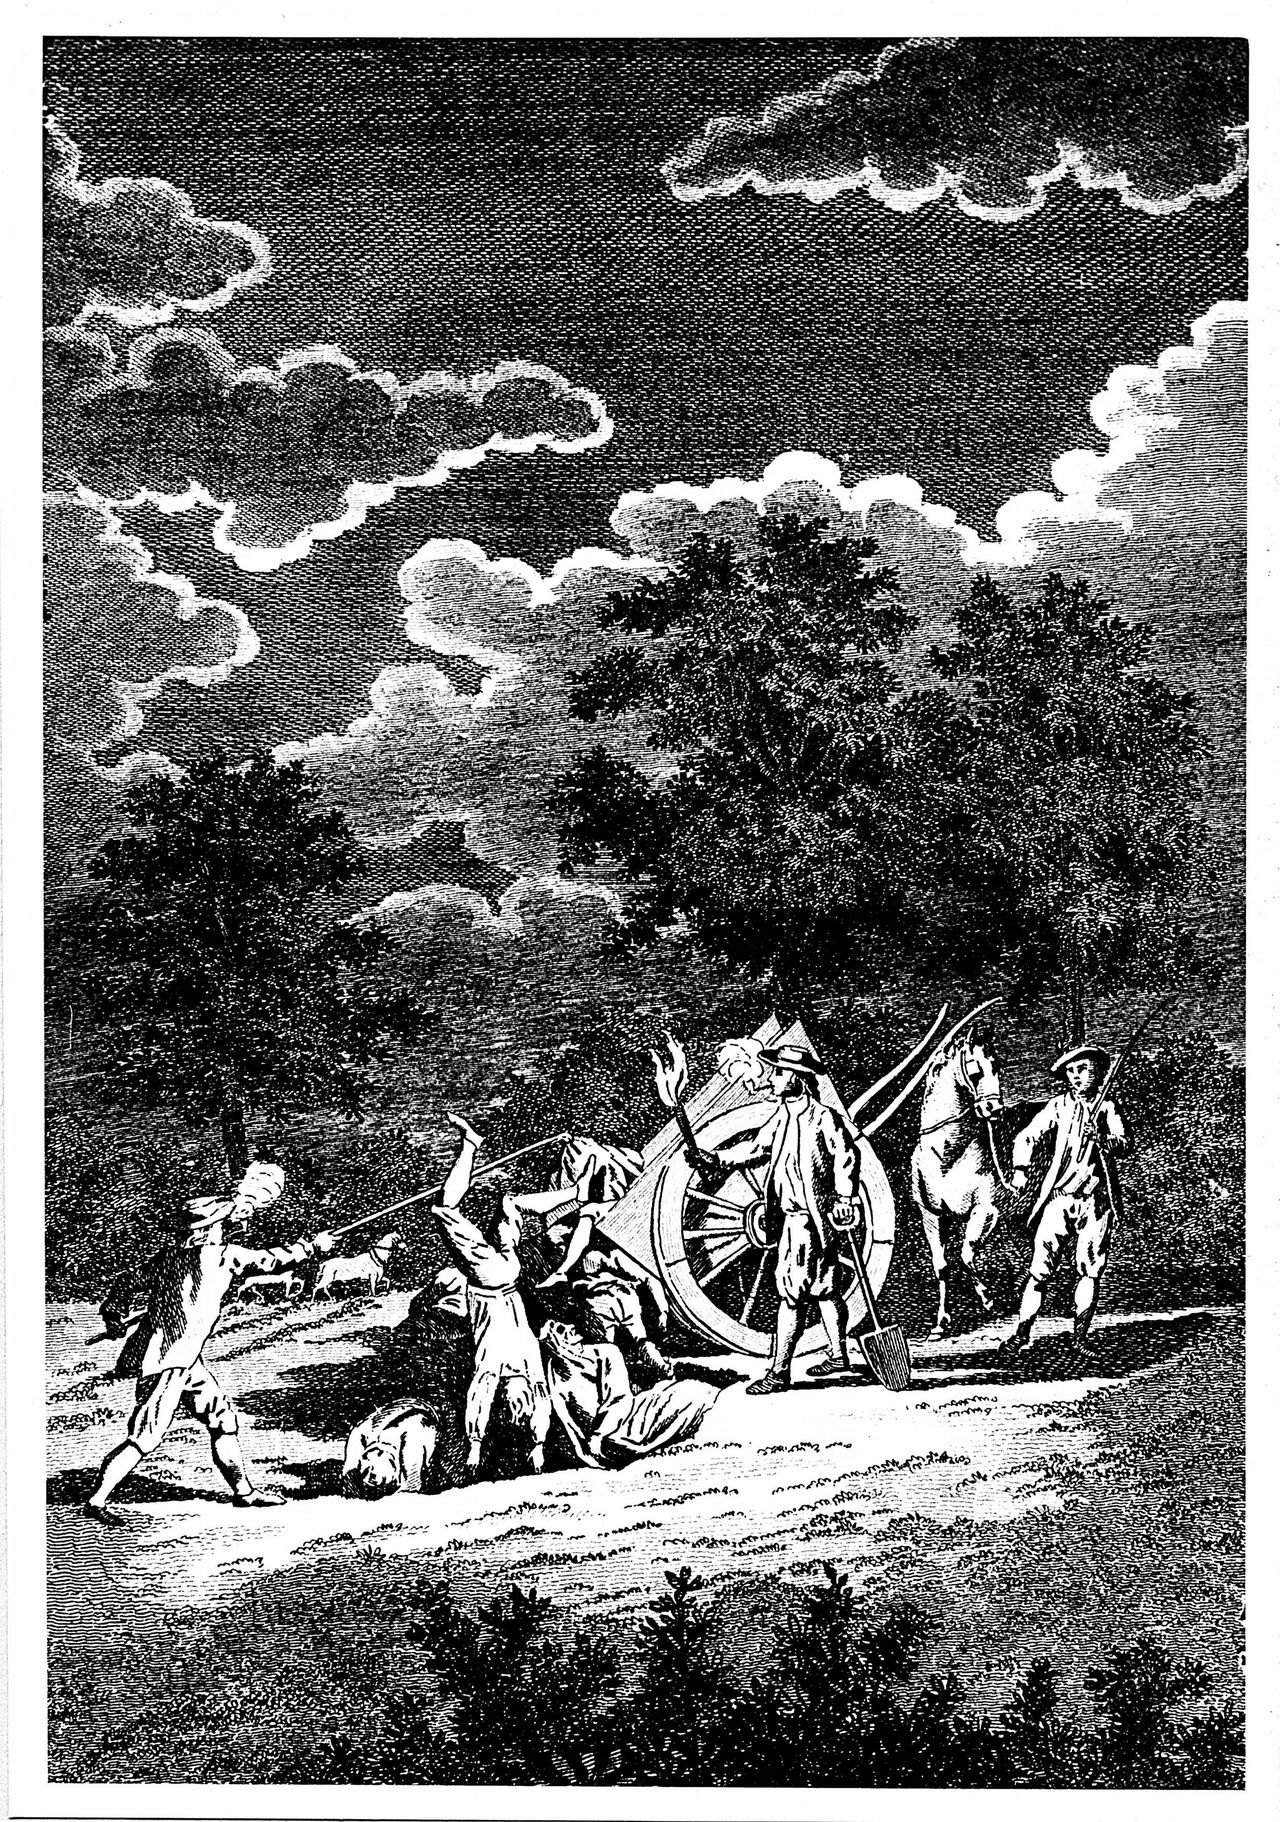 Burying victims of the Plague of London (1665) at night in multiple graves. Two of men are smoking pipes, partly to combat stench of corpses, partly in hope that Tobacco smoke would preventing them becoming infected. Copperplate engraving